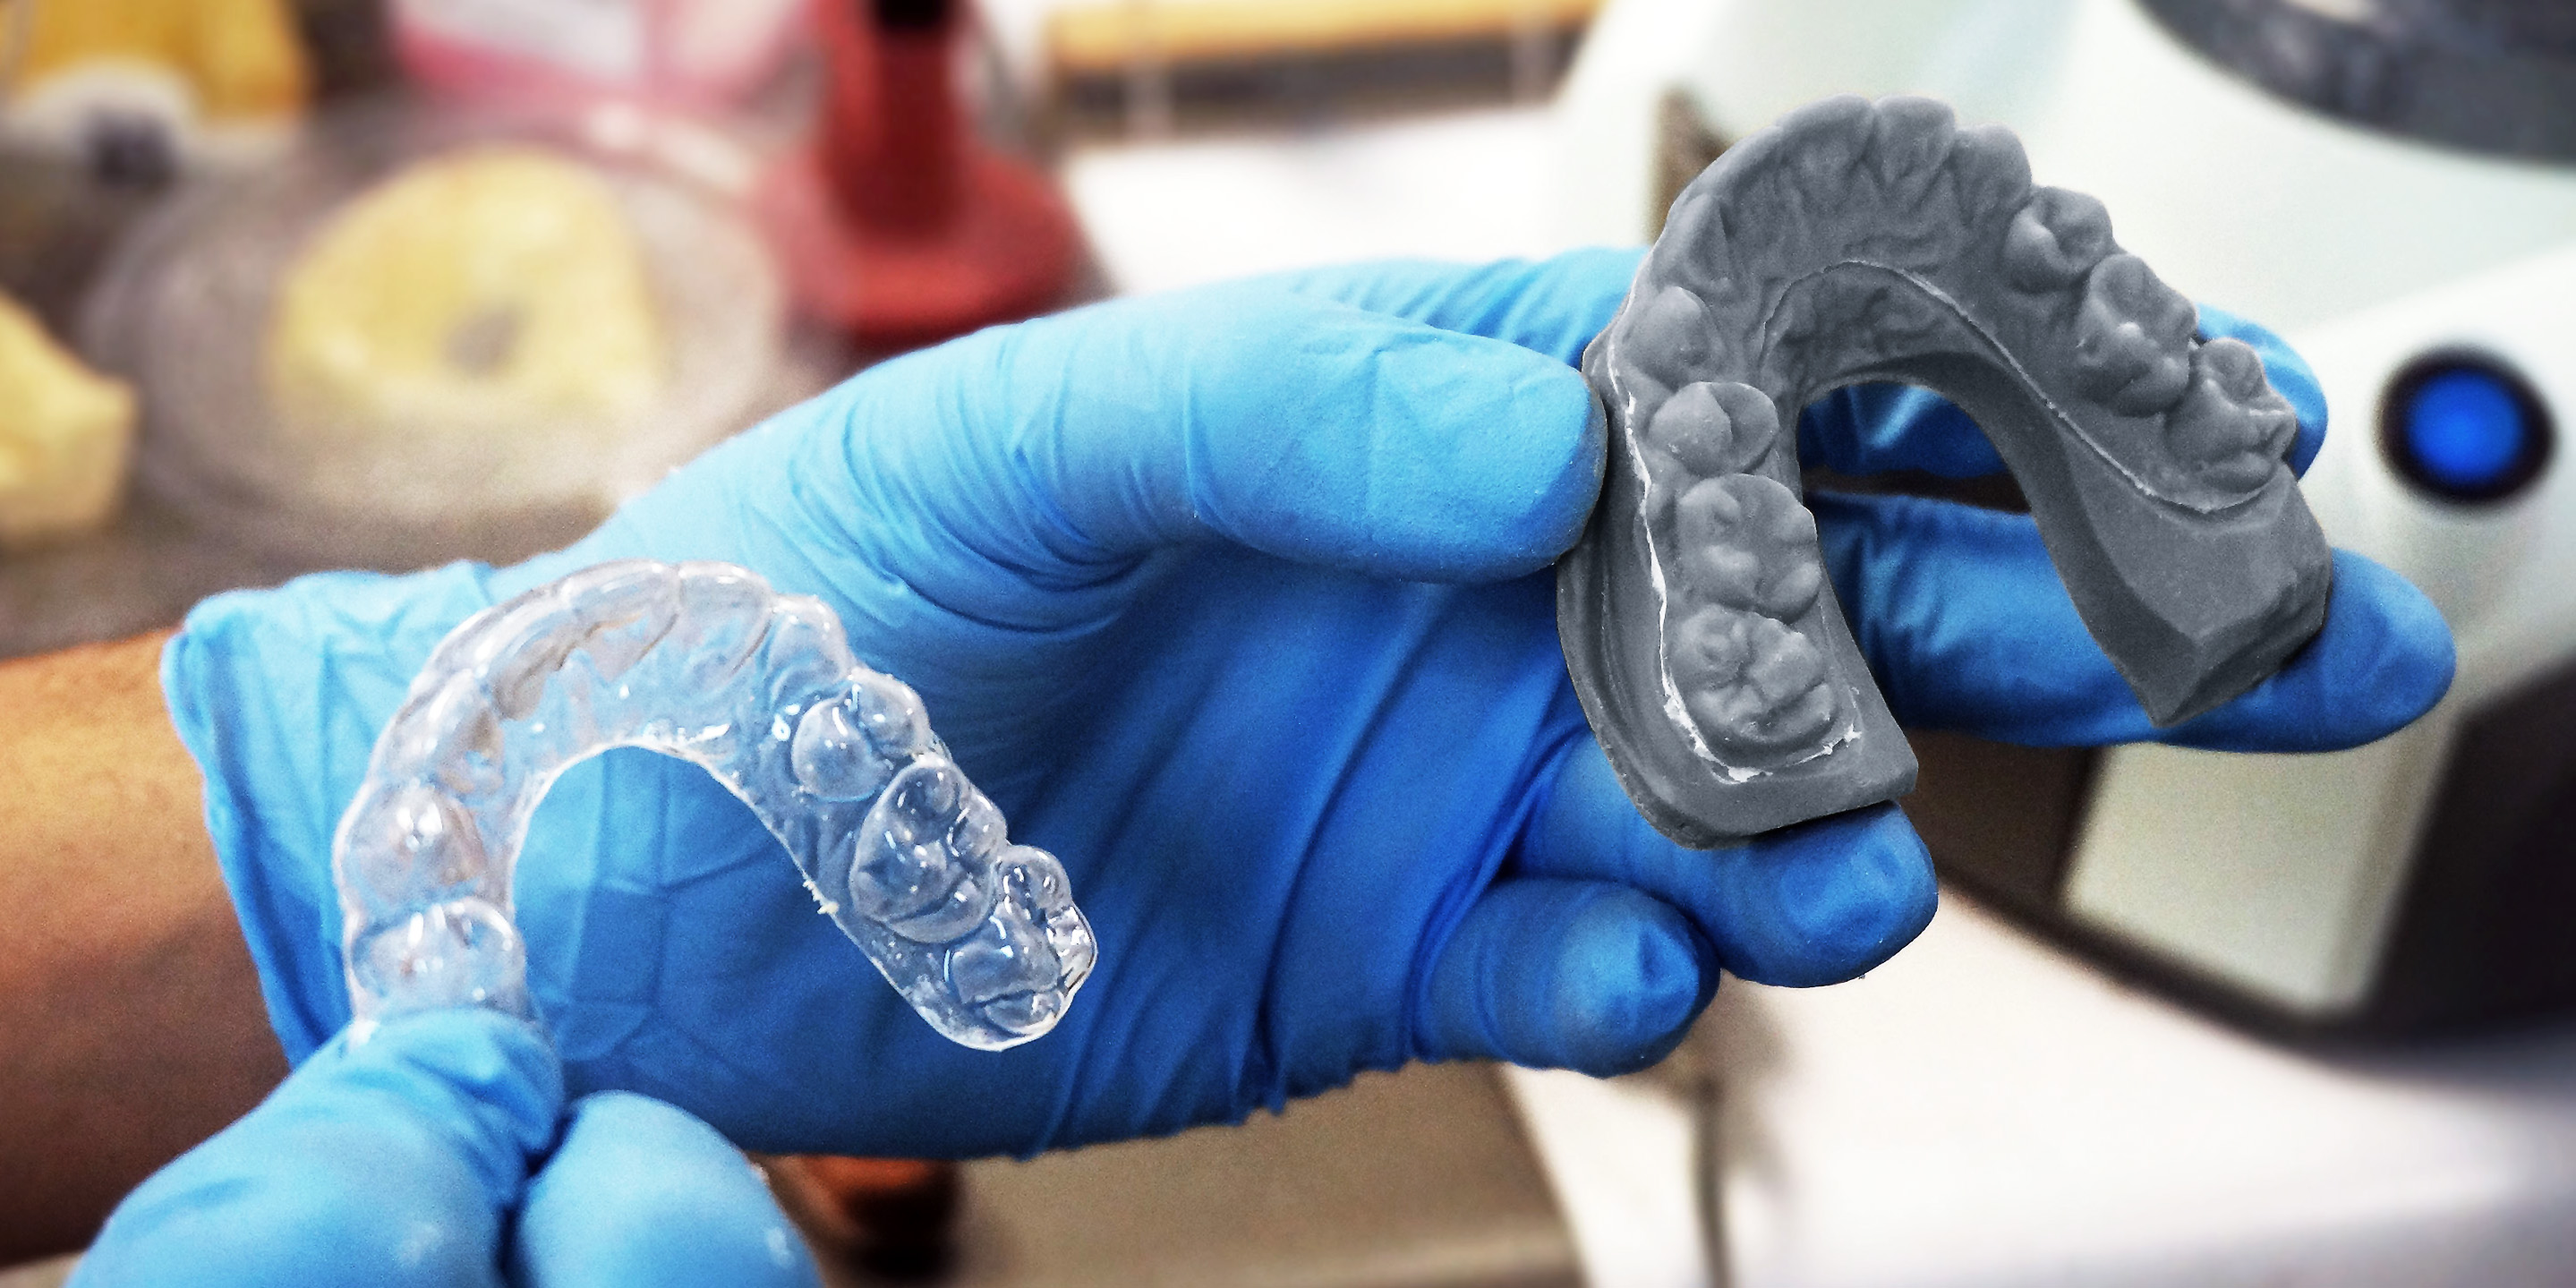 3d printed dental appliance for aligners